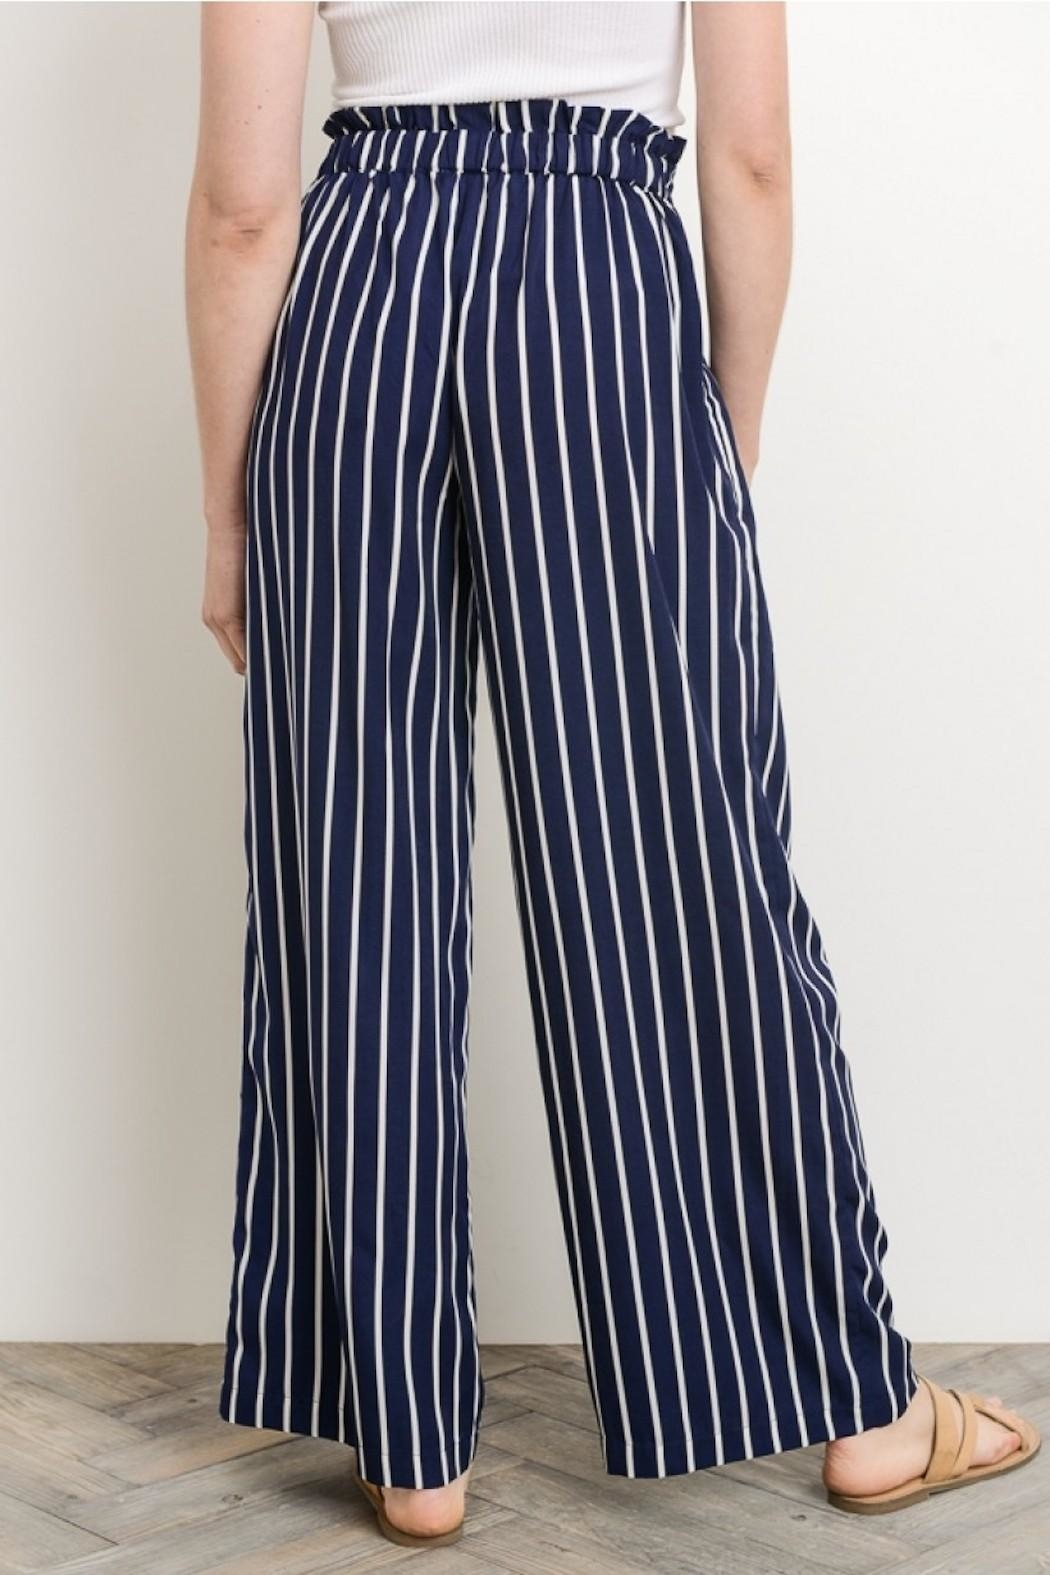 Gilli Navy Striped Pants - Back Cropped Image